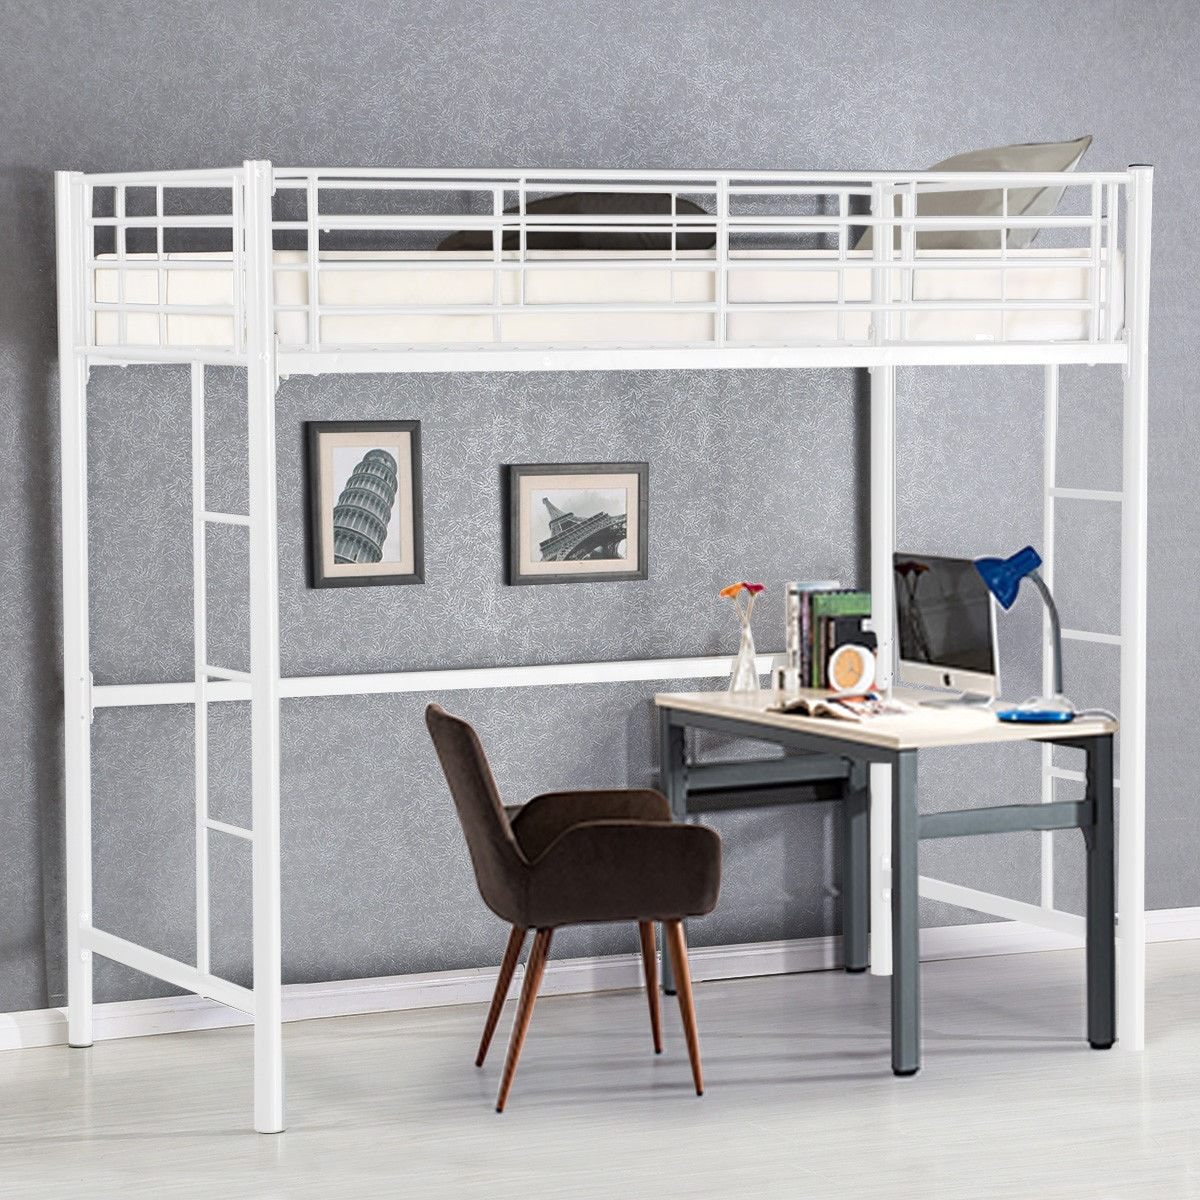 Picture of: Gymax Twin Loft Bed Metal Bunk Ladder Beds Boys Girls Teens Kids Overstock 22833861